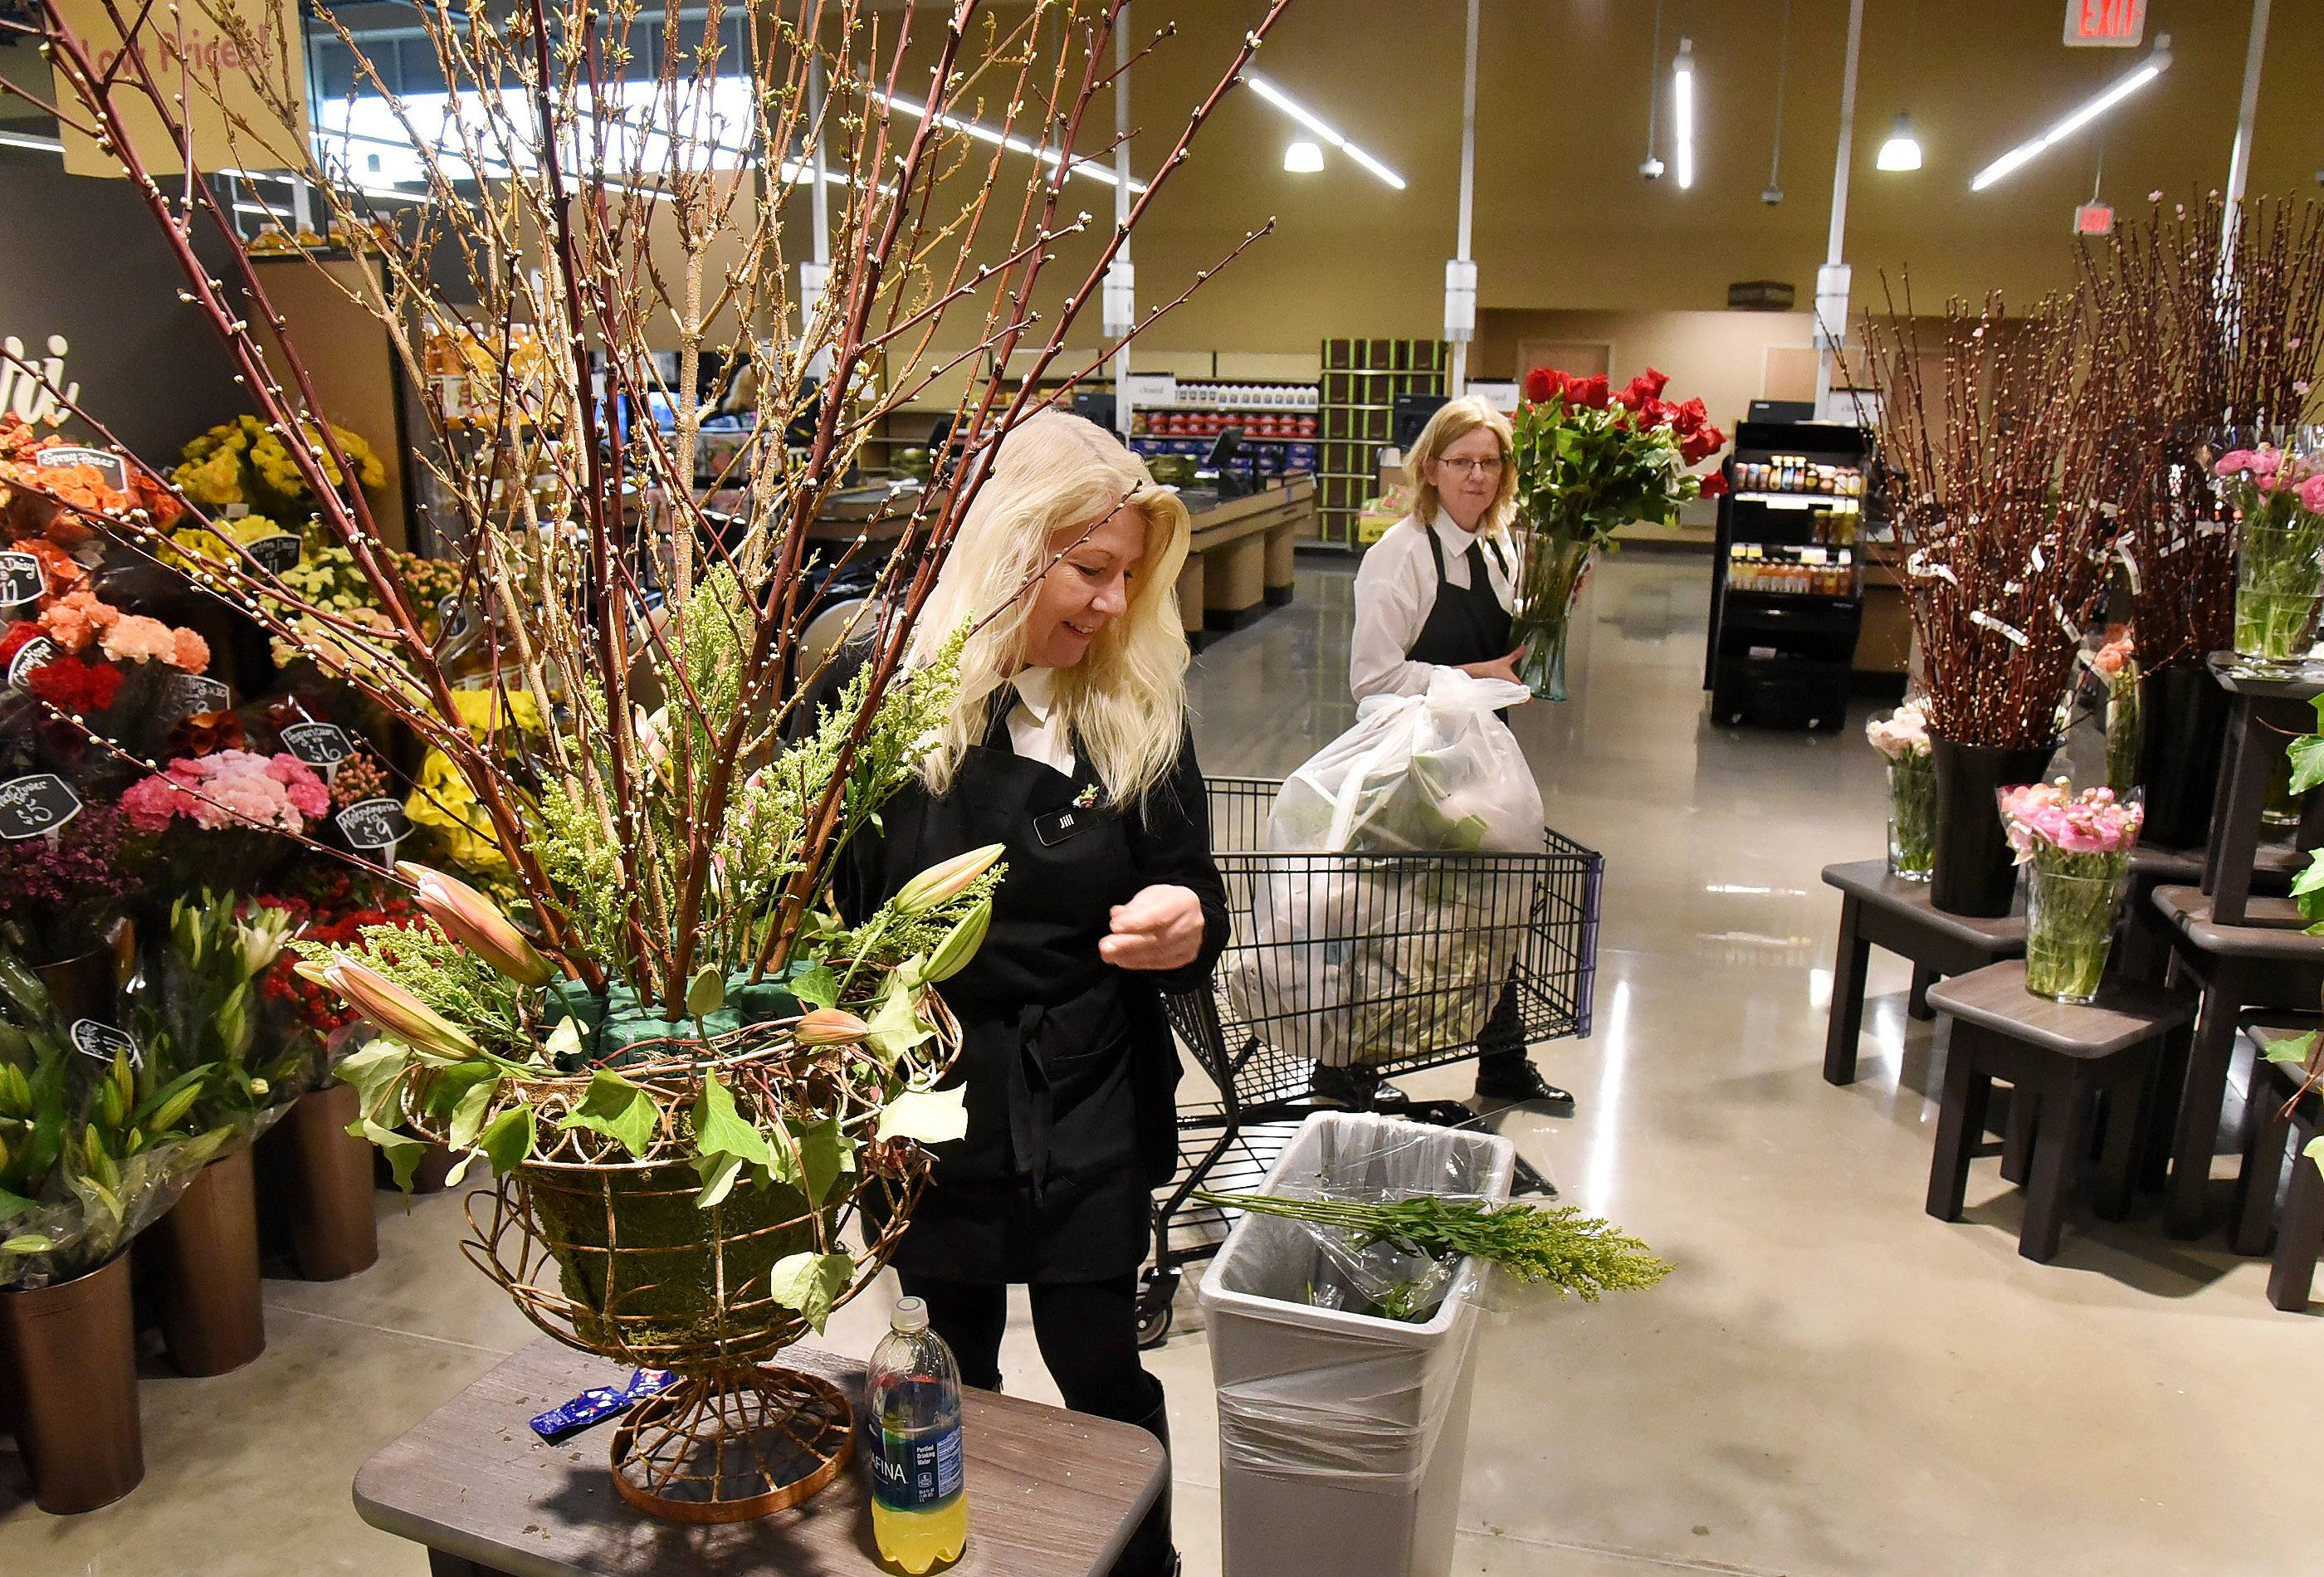 Jill Johnson, left, and Mary Beth White put finishing touches to the floral department of the new Mariano's in Des Plaines. The store opens to the public at 6 a.m. Tuesday.